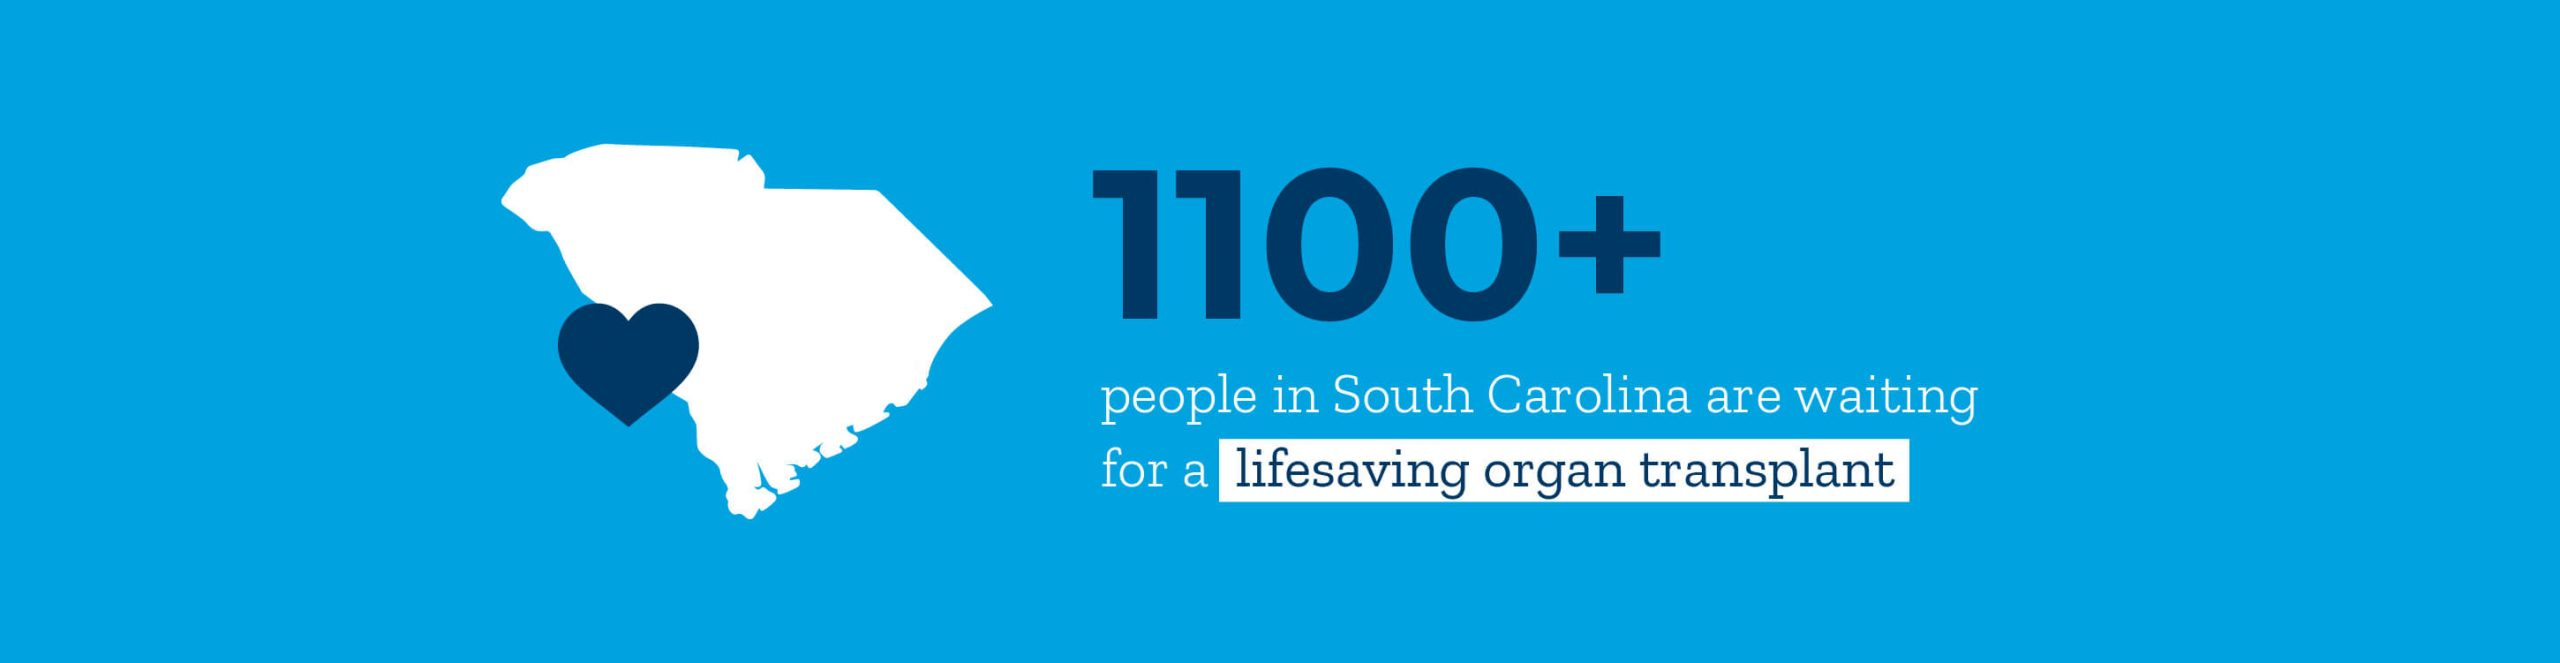 Infographic: over 1100 people in south Carolina are waiting for a lifesaving organ transplant.